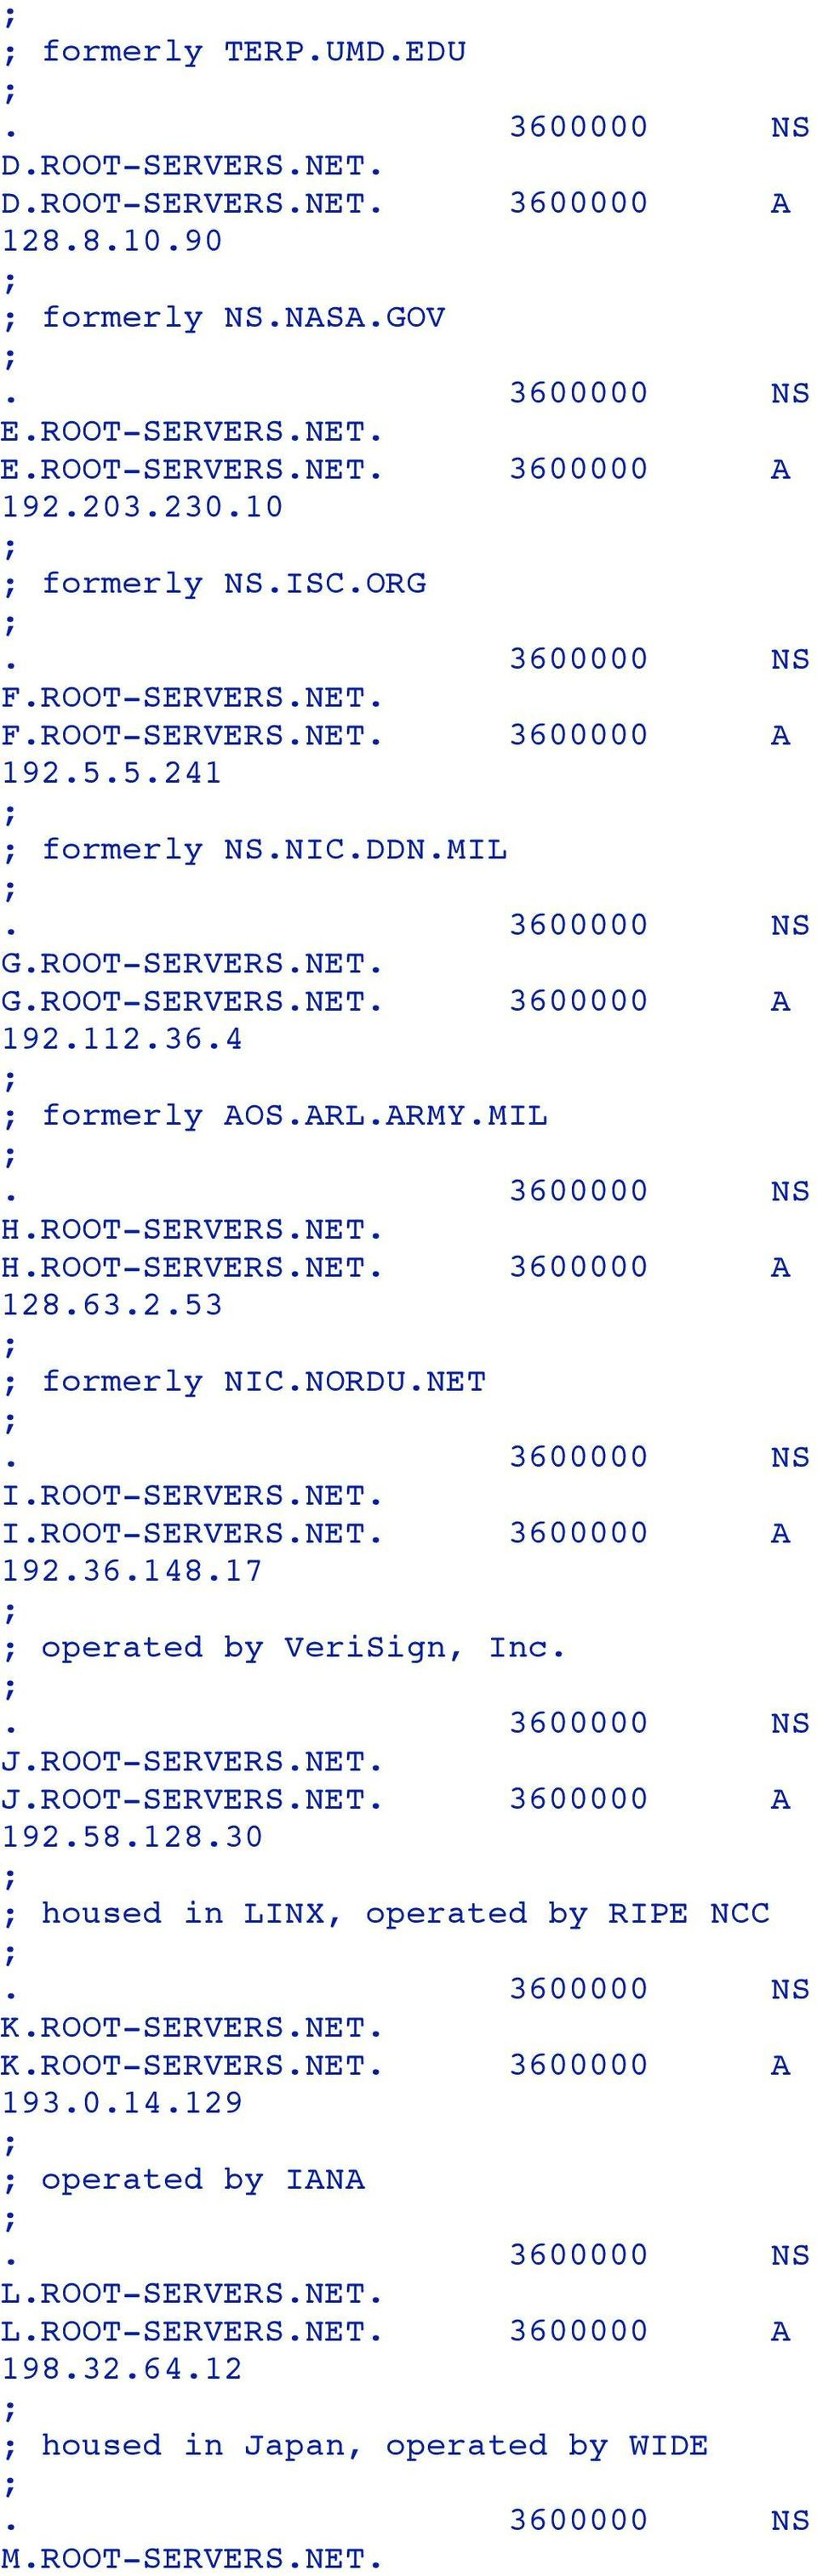 63.2.53 formerly NIC.NORDU.NET I.ROOT-SERVERS.NET. I.ROOT-SERVERS.NET. 3600000 A 192.36.148.17 operated by VeriSign, Inc. J.ROOT-SERVERS.NET. J.ROOT-SERVERS.NET. 3600000 A 192.58.128.